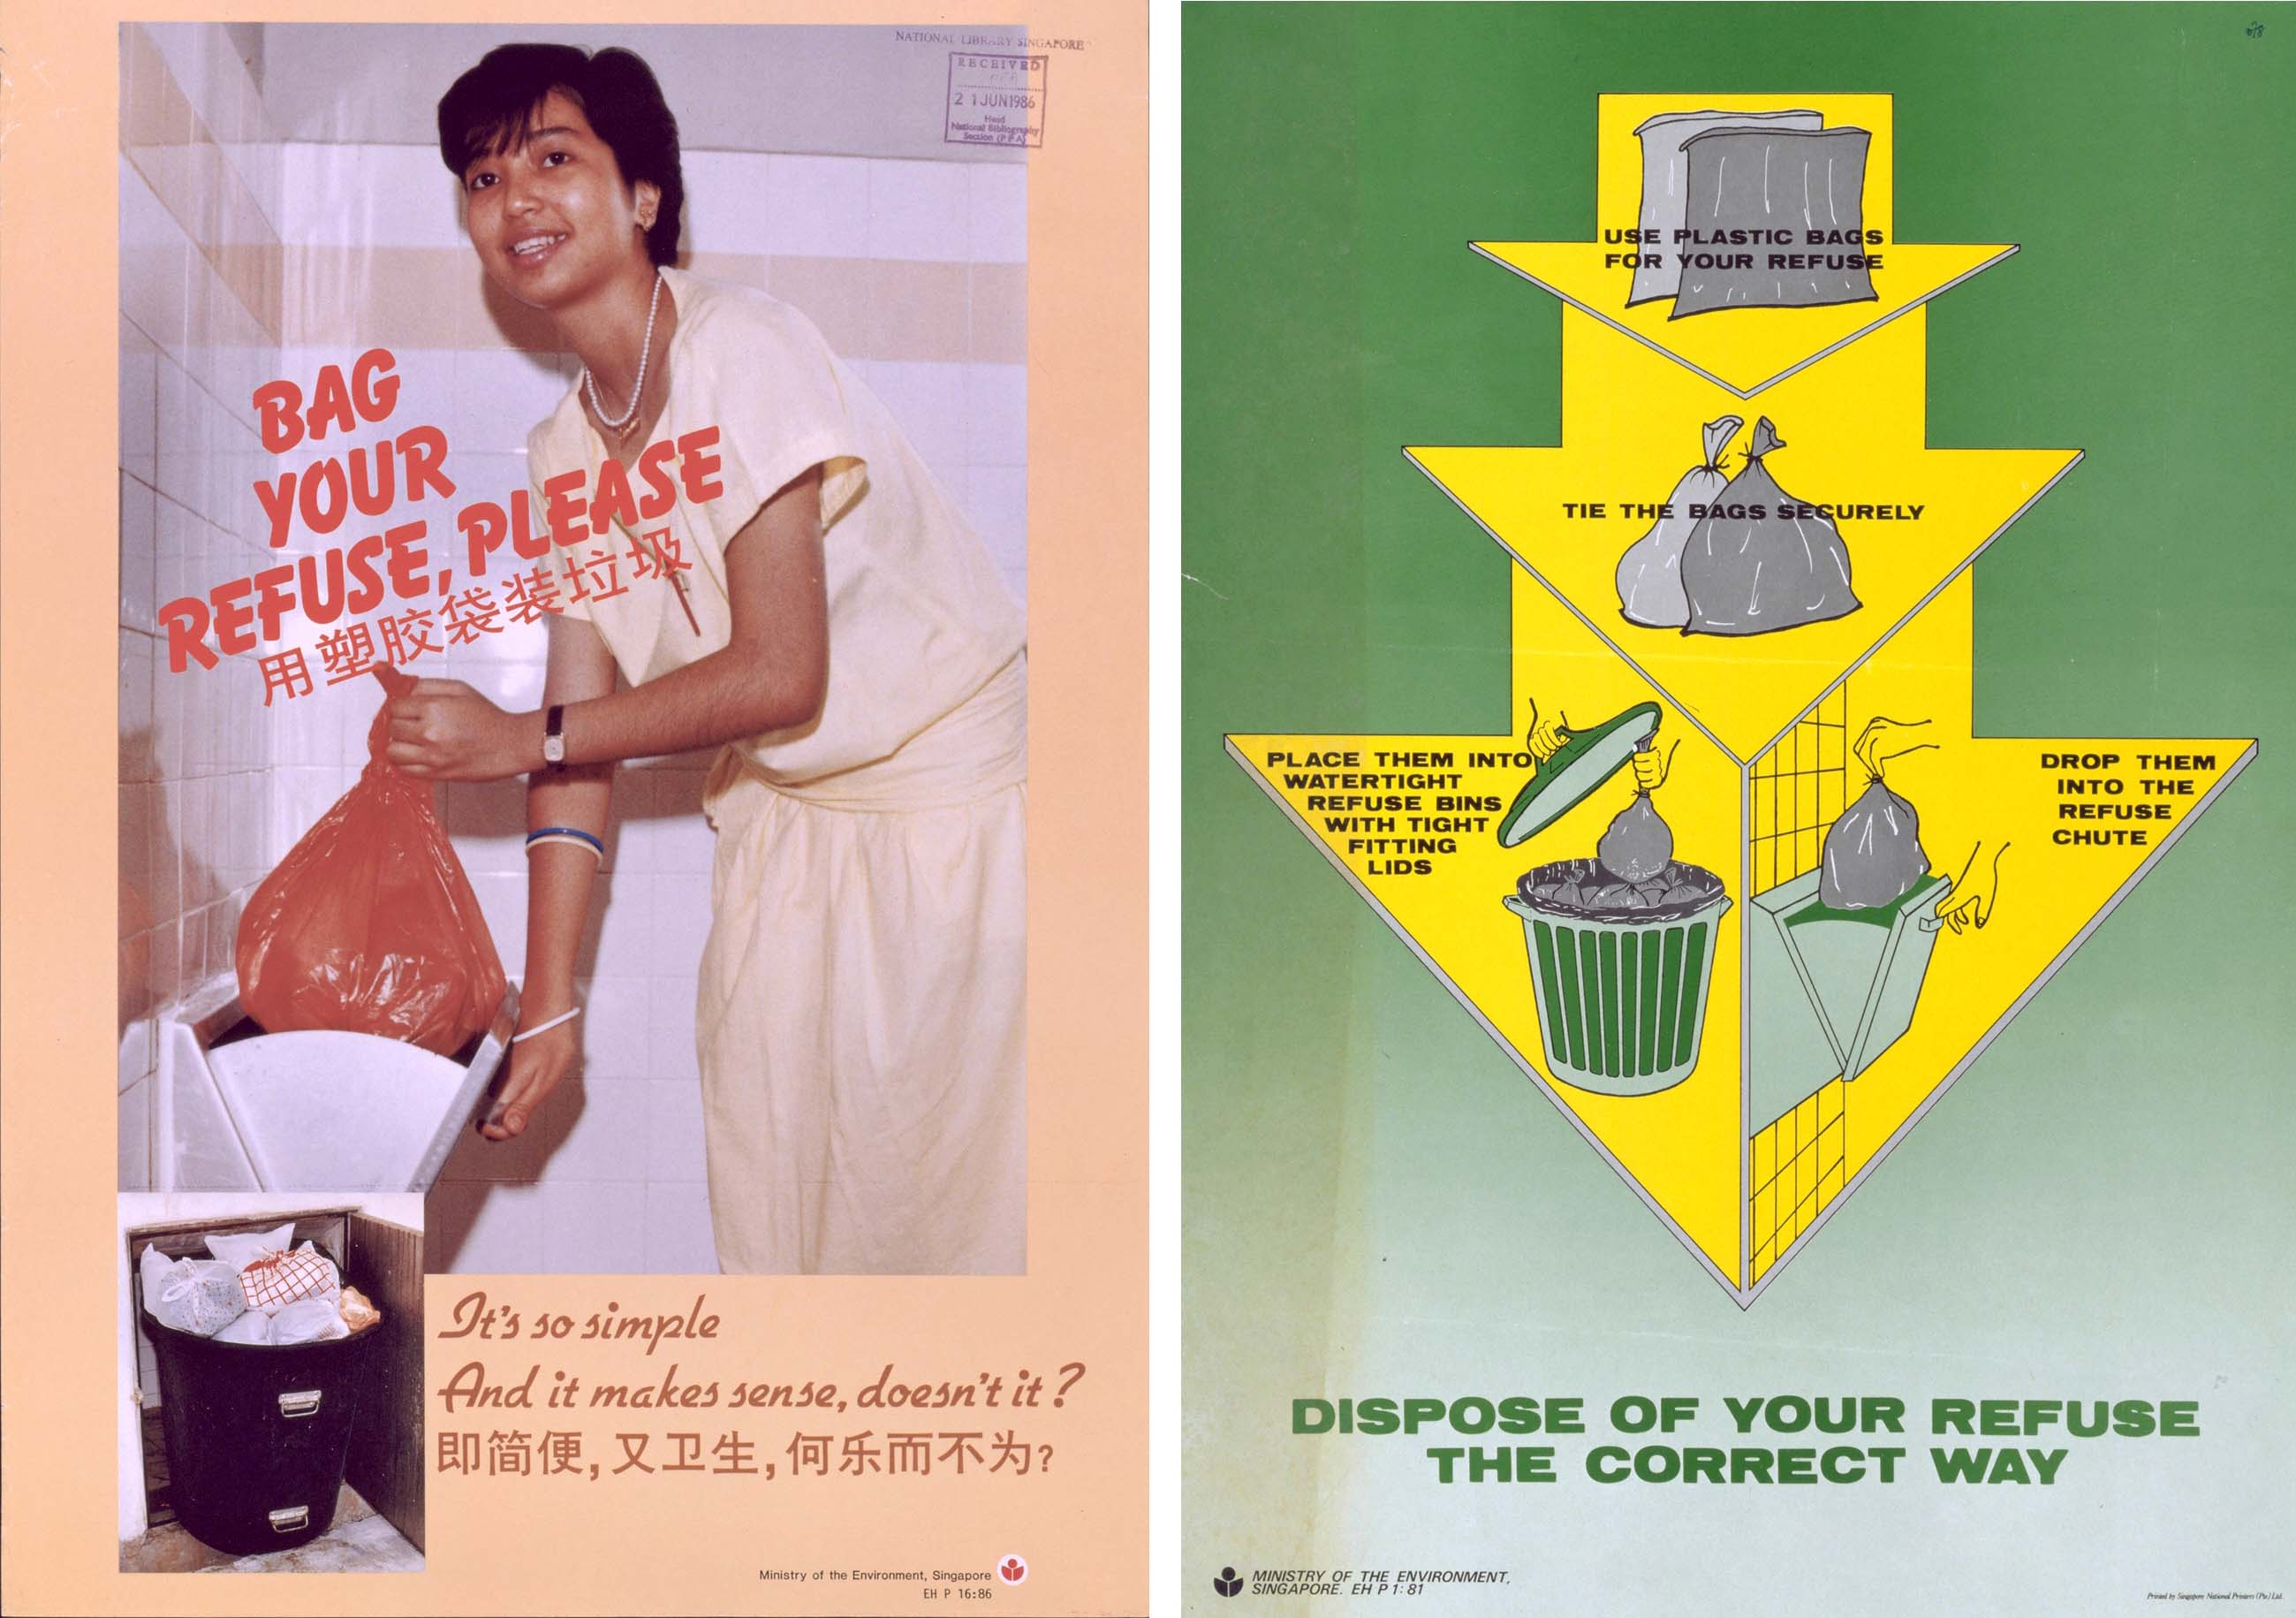 Posters from the educational programme run by the Ministry of Environment to encourage residents to bag their waste